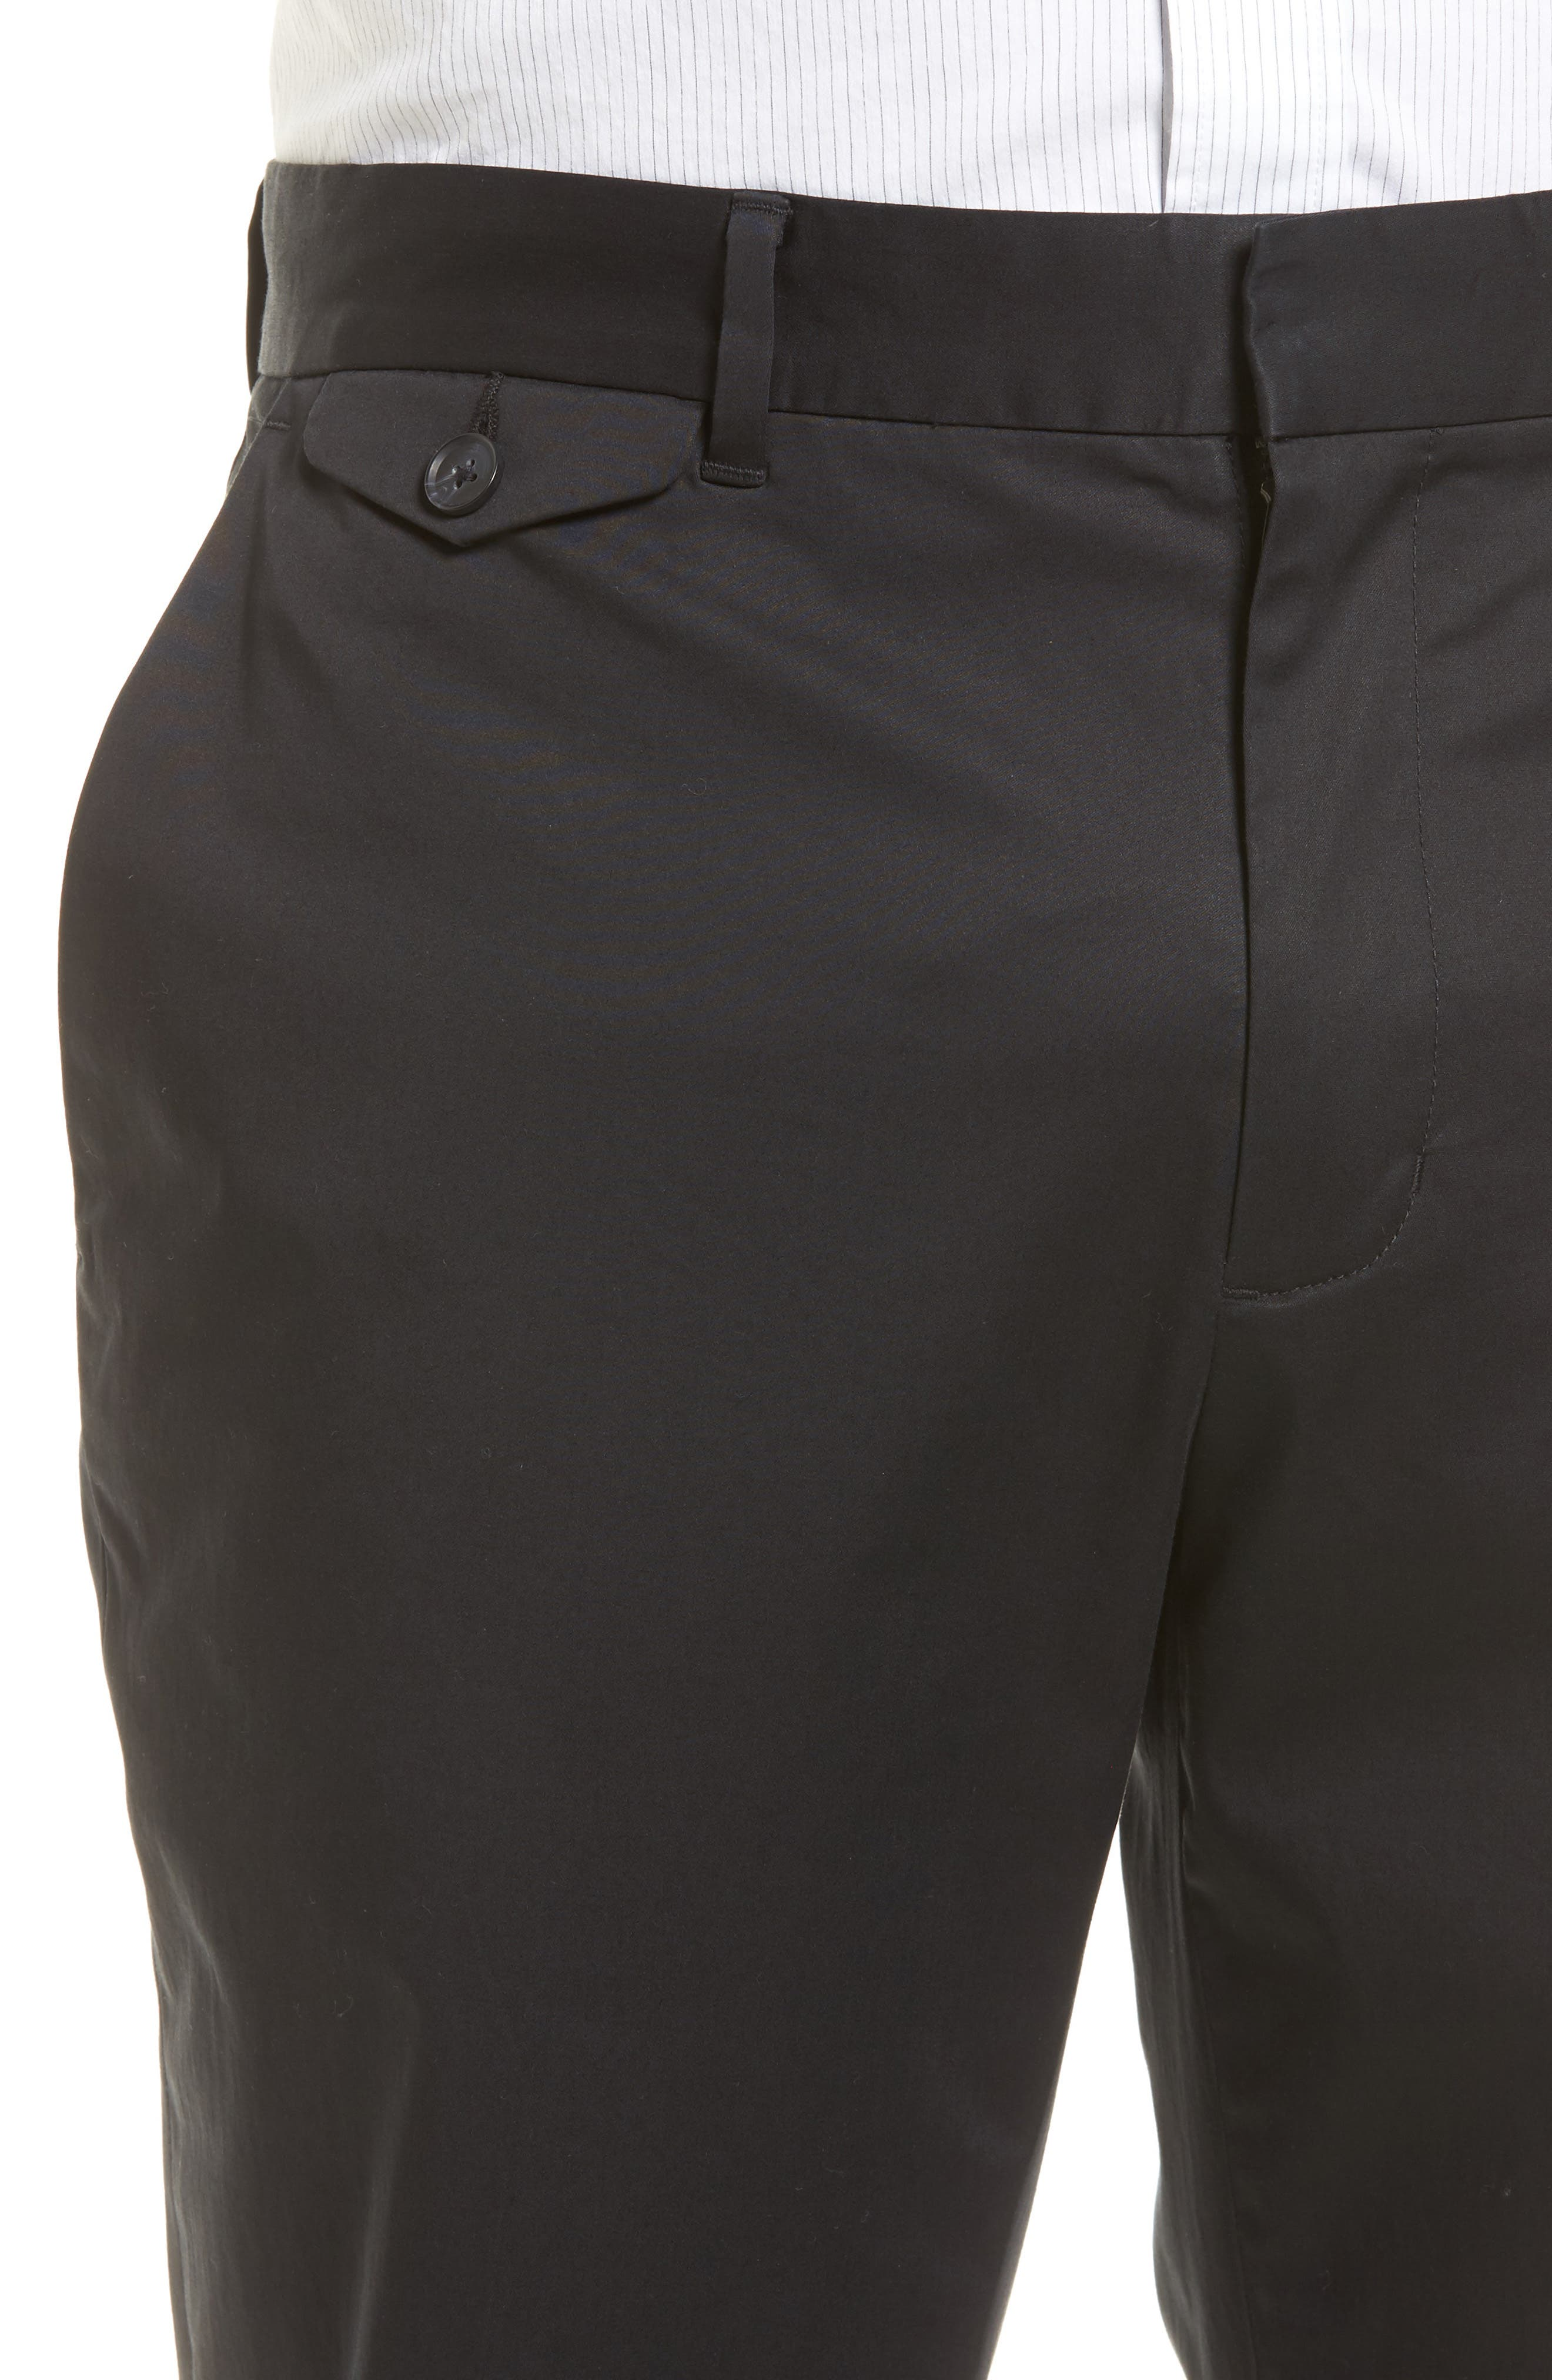 Officer Flat Front Chino Pants,                             Alternate thumbnail 4, color,                             001